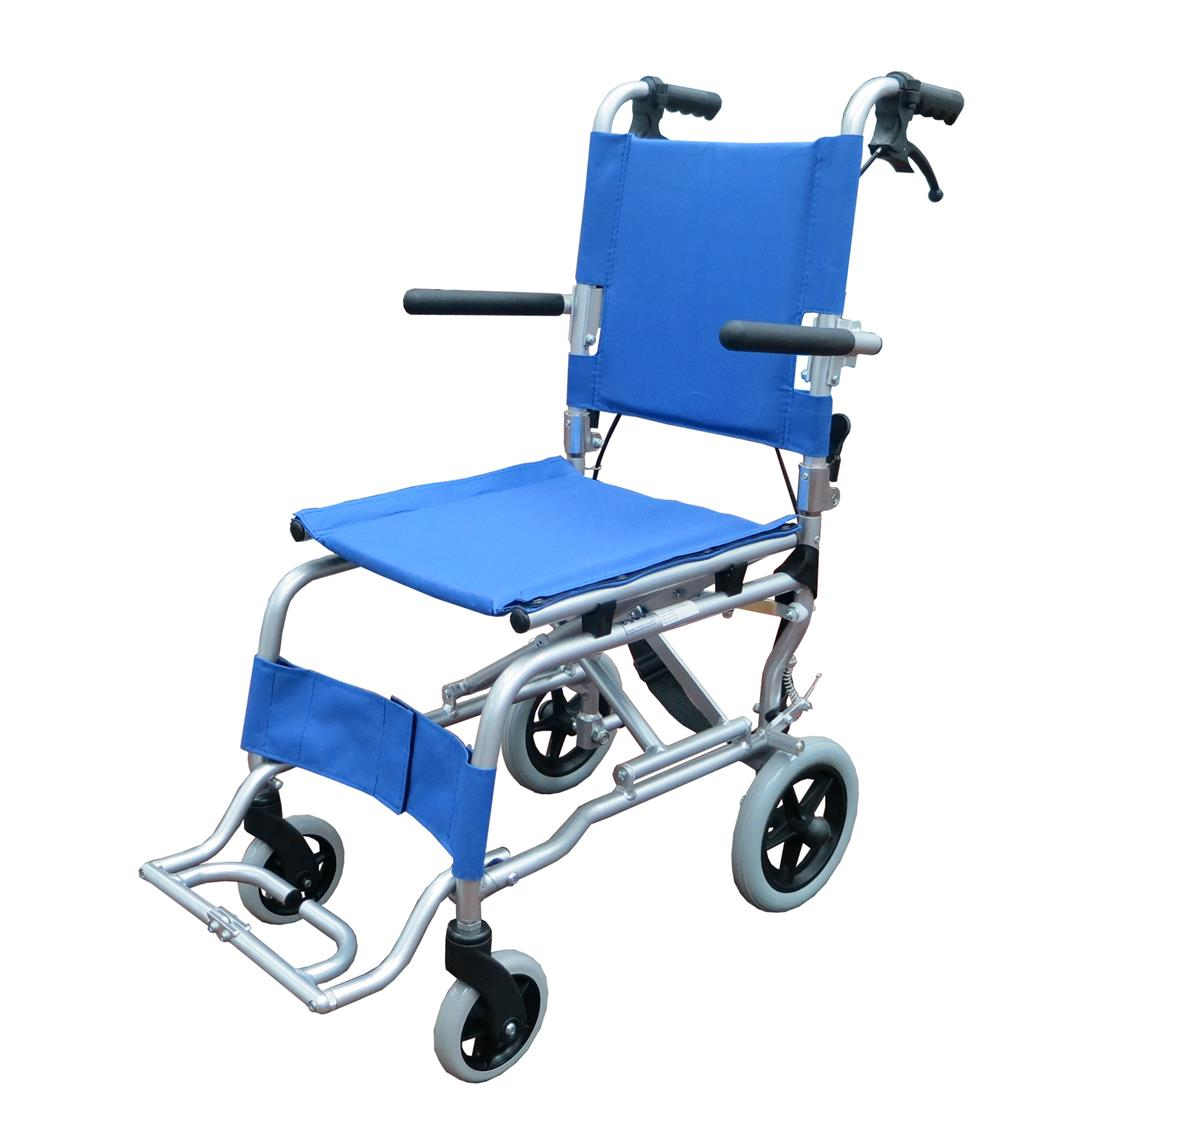 smart chair electric wheelchair by kd healthcare farmhouse kids table and chairs set esco light weight travel wheel end 7 17 2019 9 39 pm